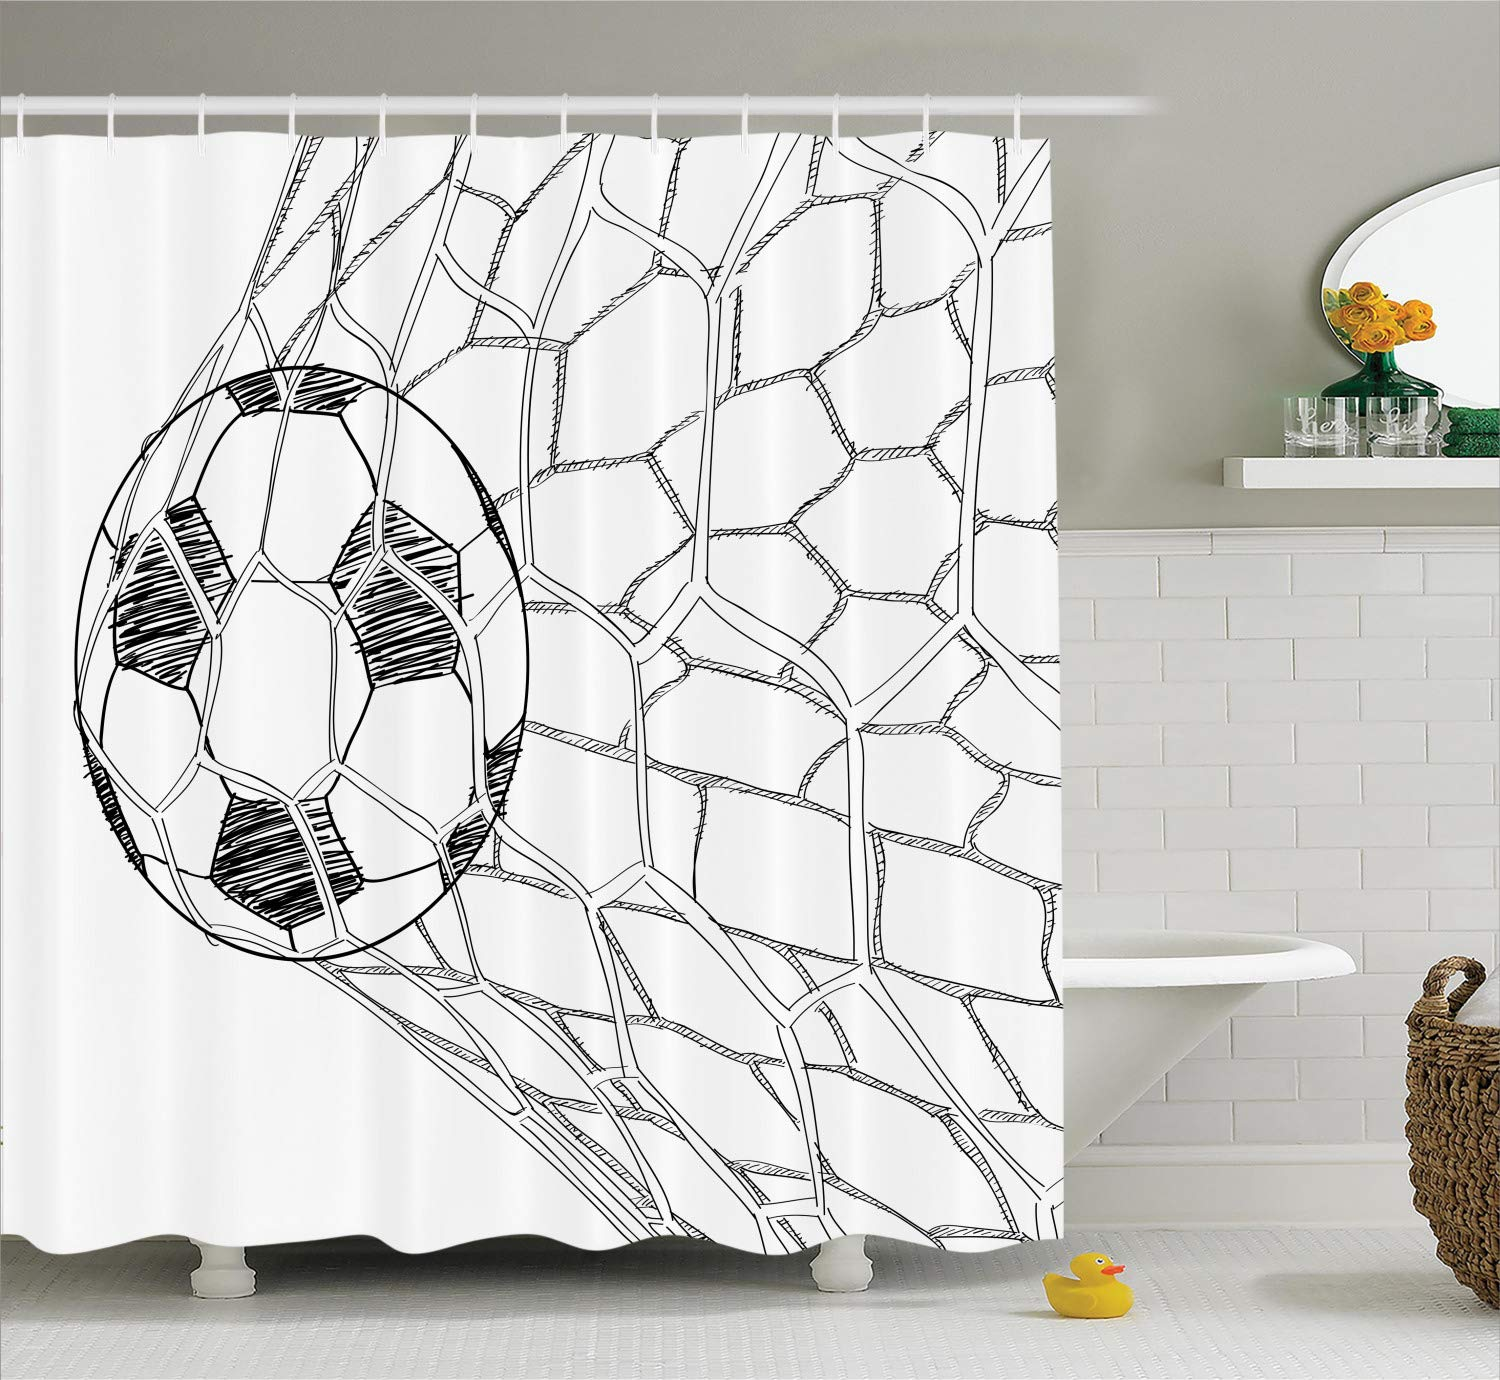 Ambesonne Soccer Shower Curtain, Soccer Ball in Net Goaly Position Sports Competition Spectators Hand Drawn Style, Cloth Fabric Bathroom Decor Set with Hooks, 75'' Long, Black White